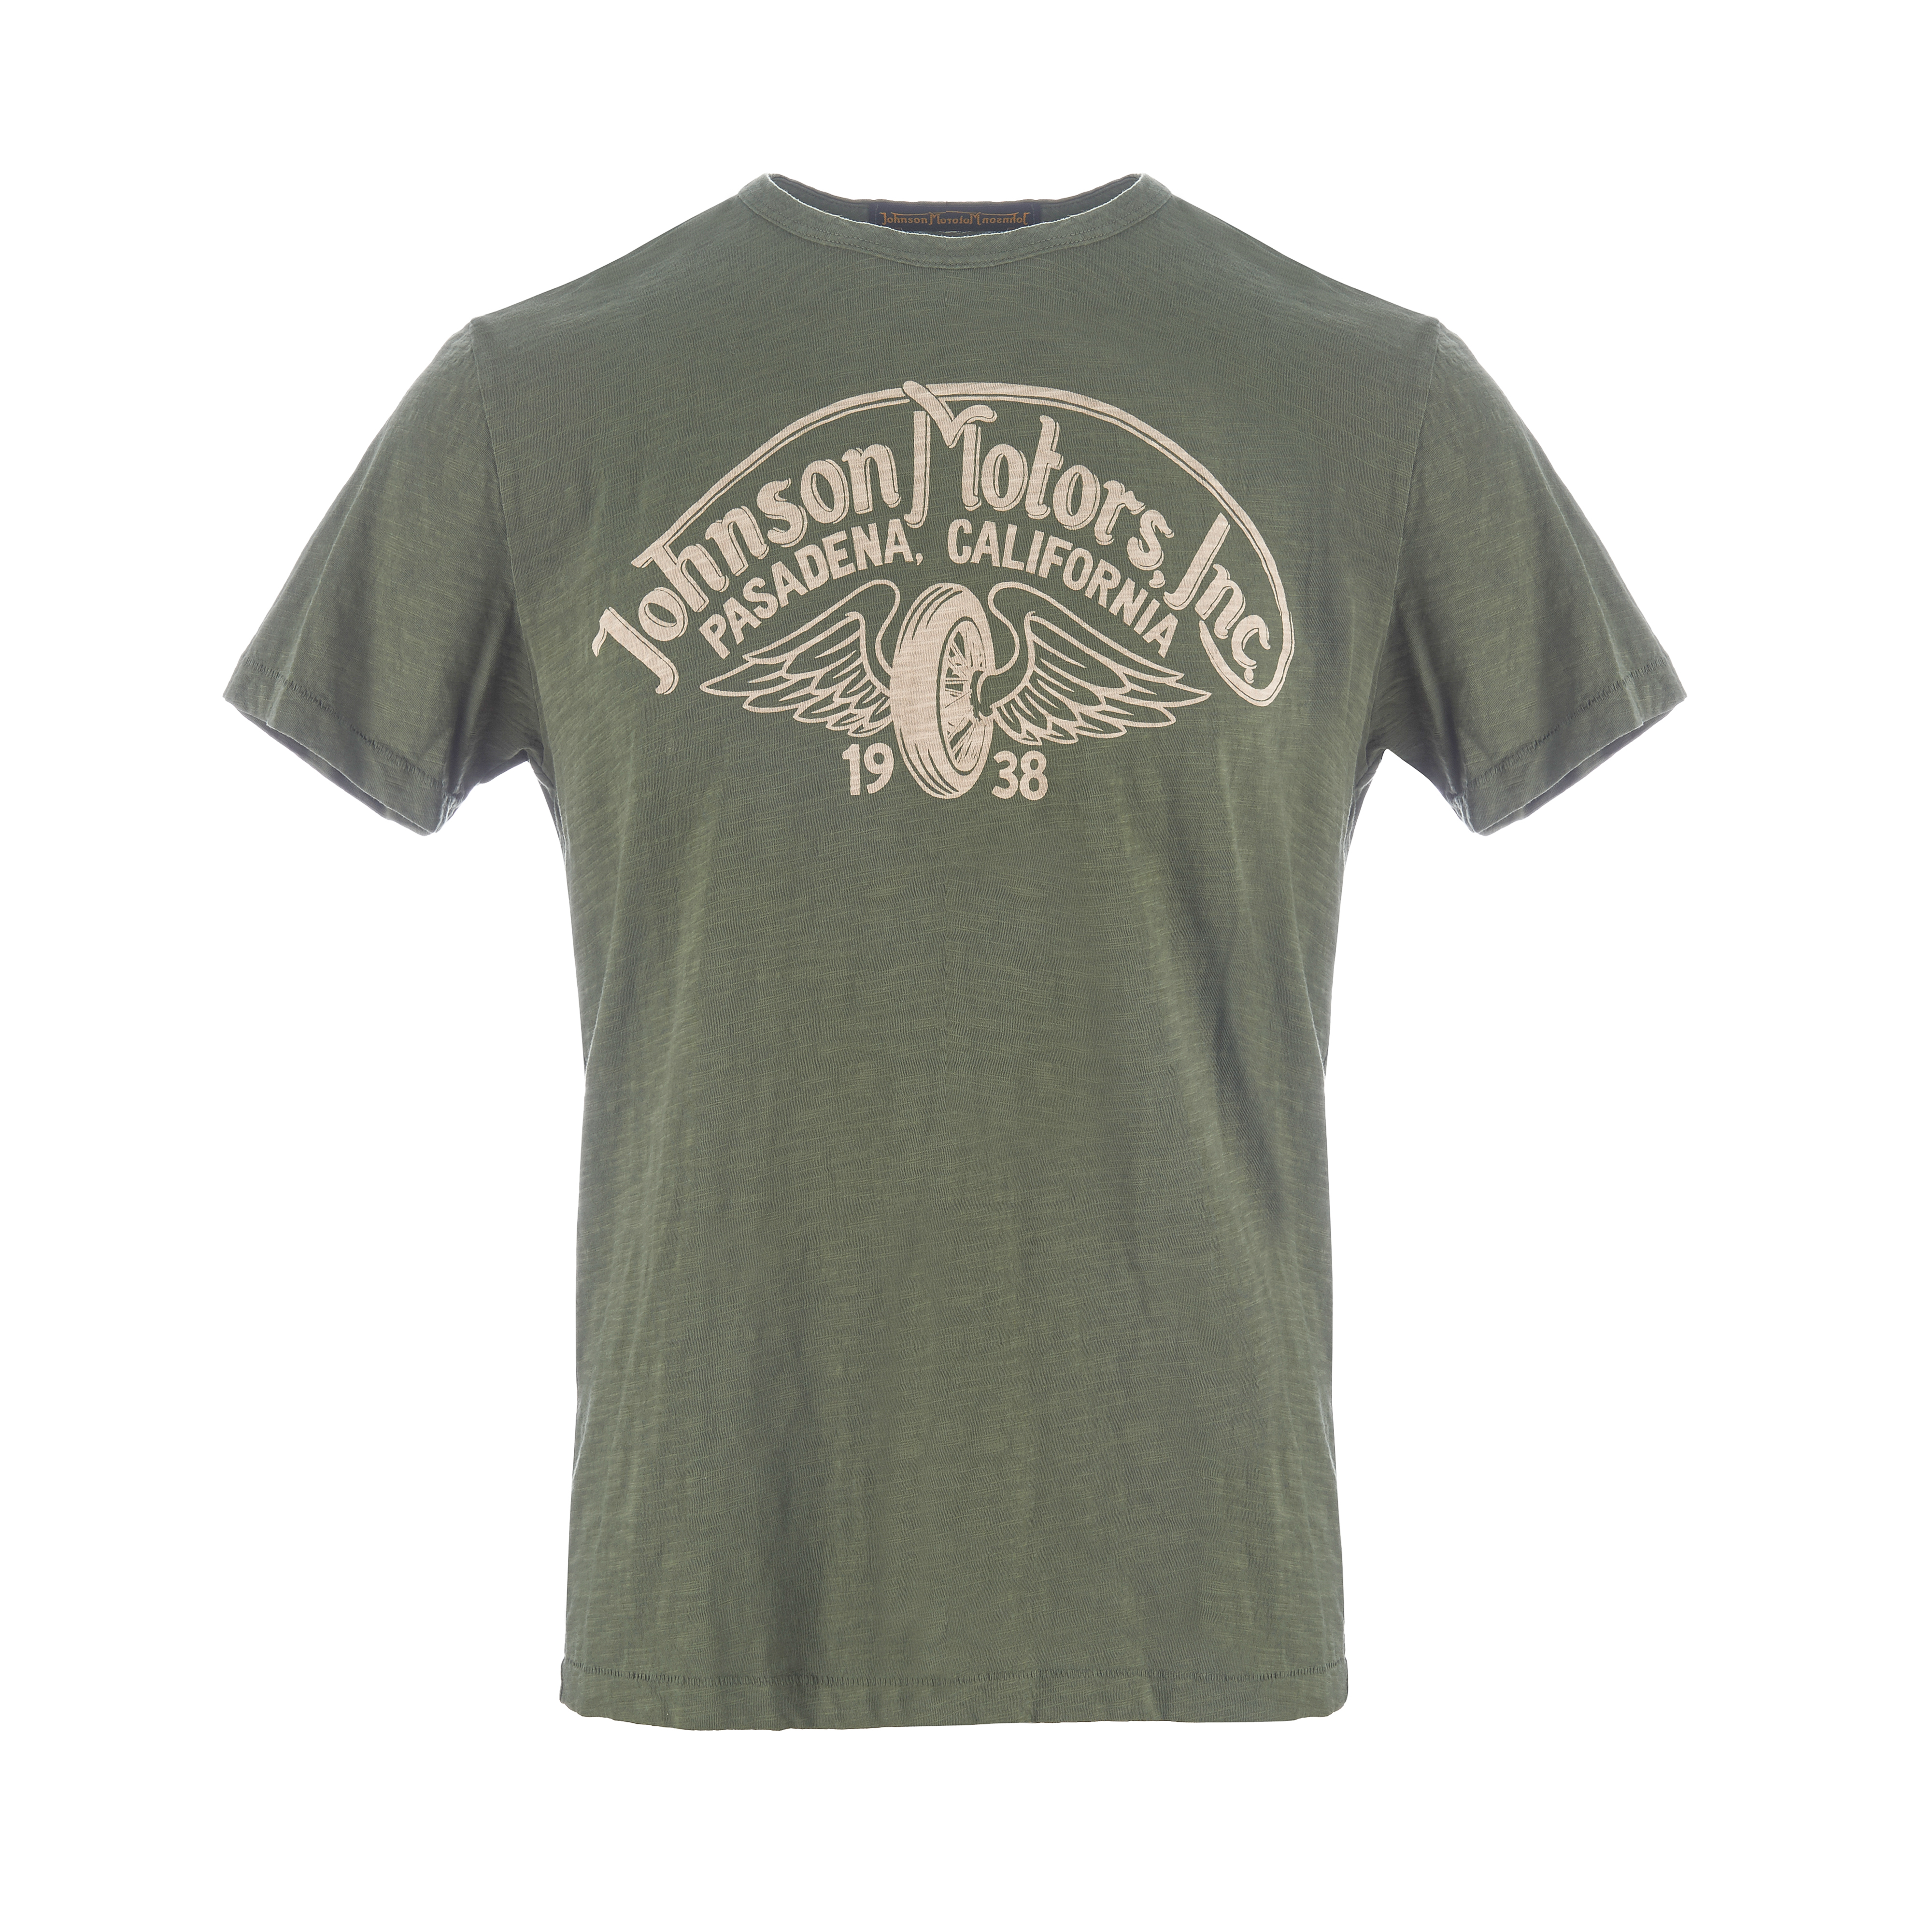 Winged Wheel T-Shirt Olive Drab